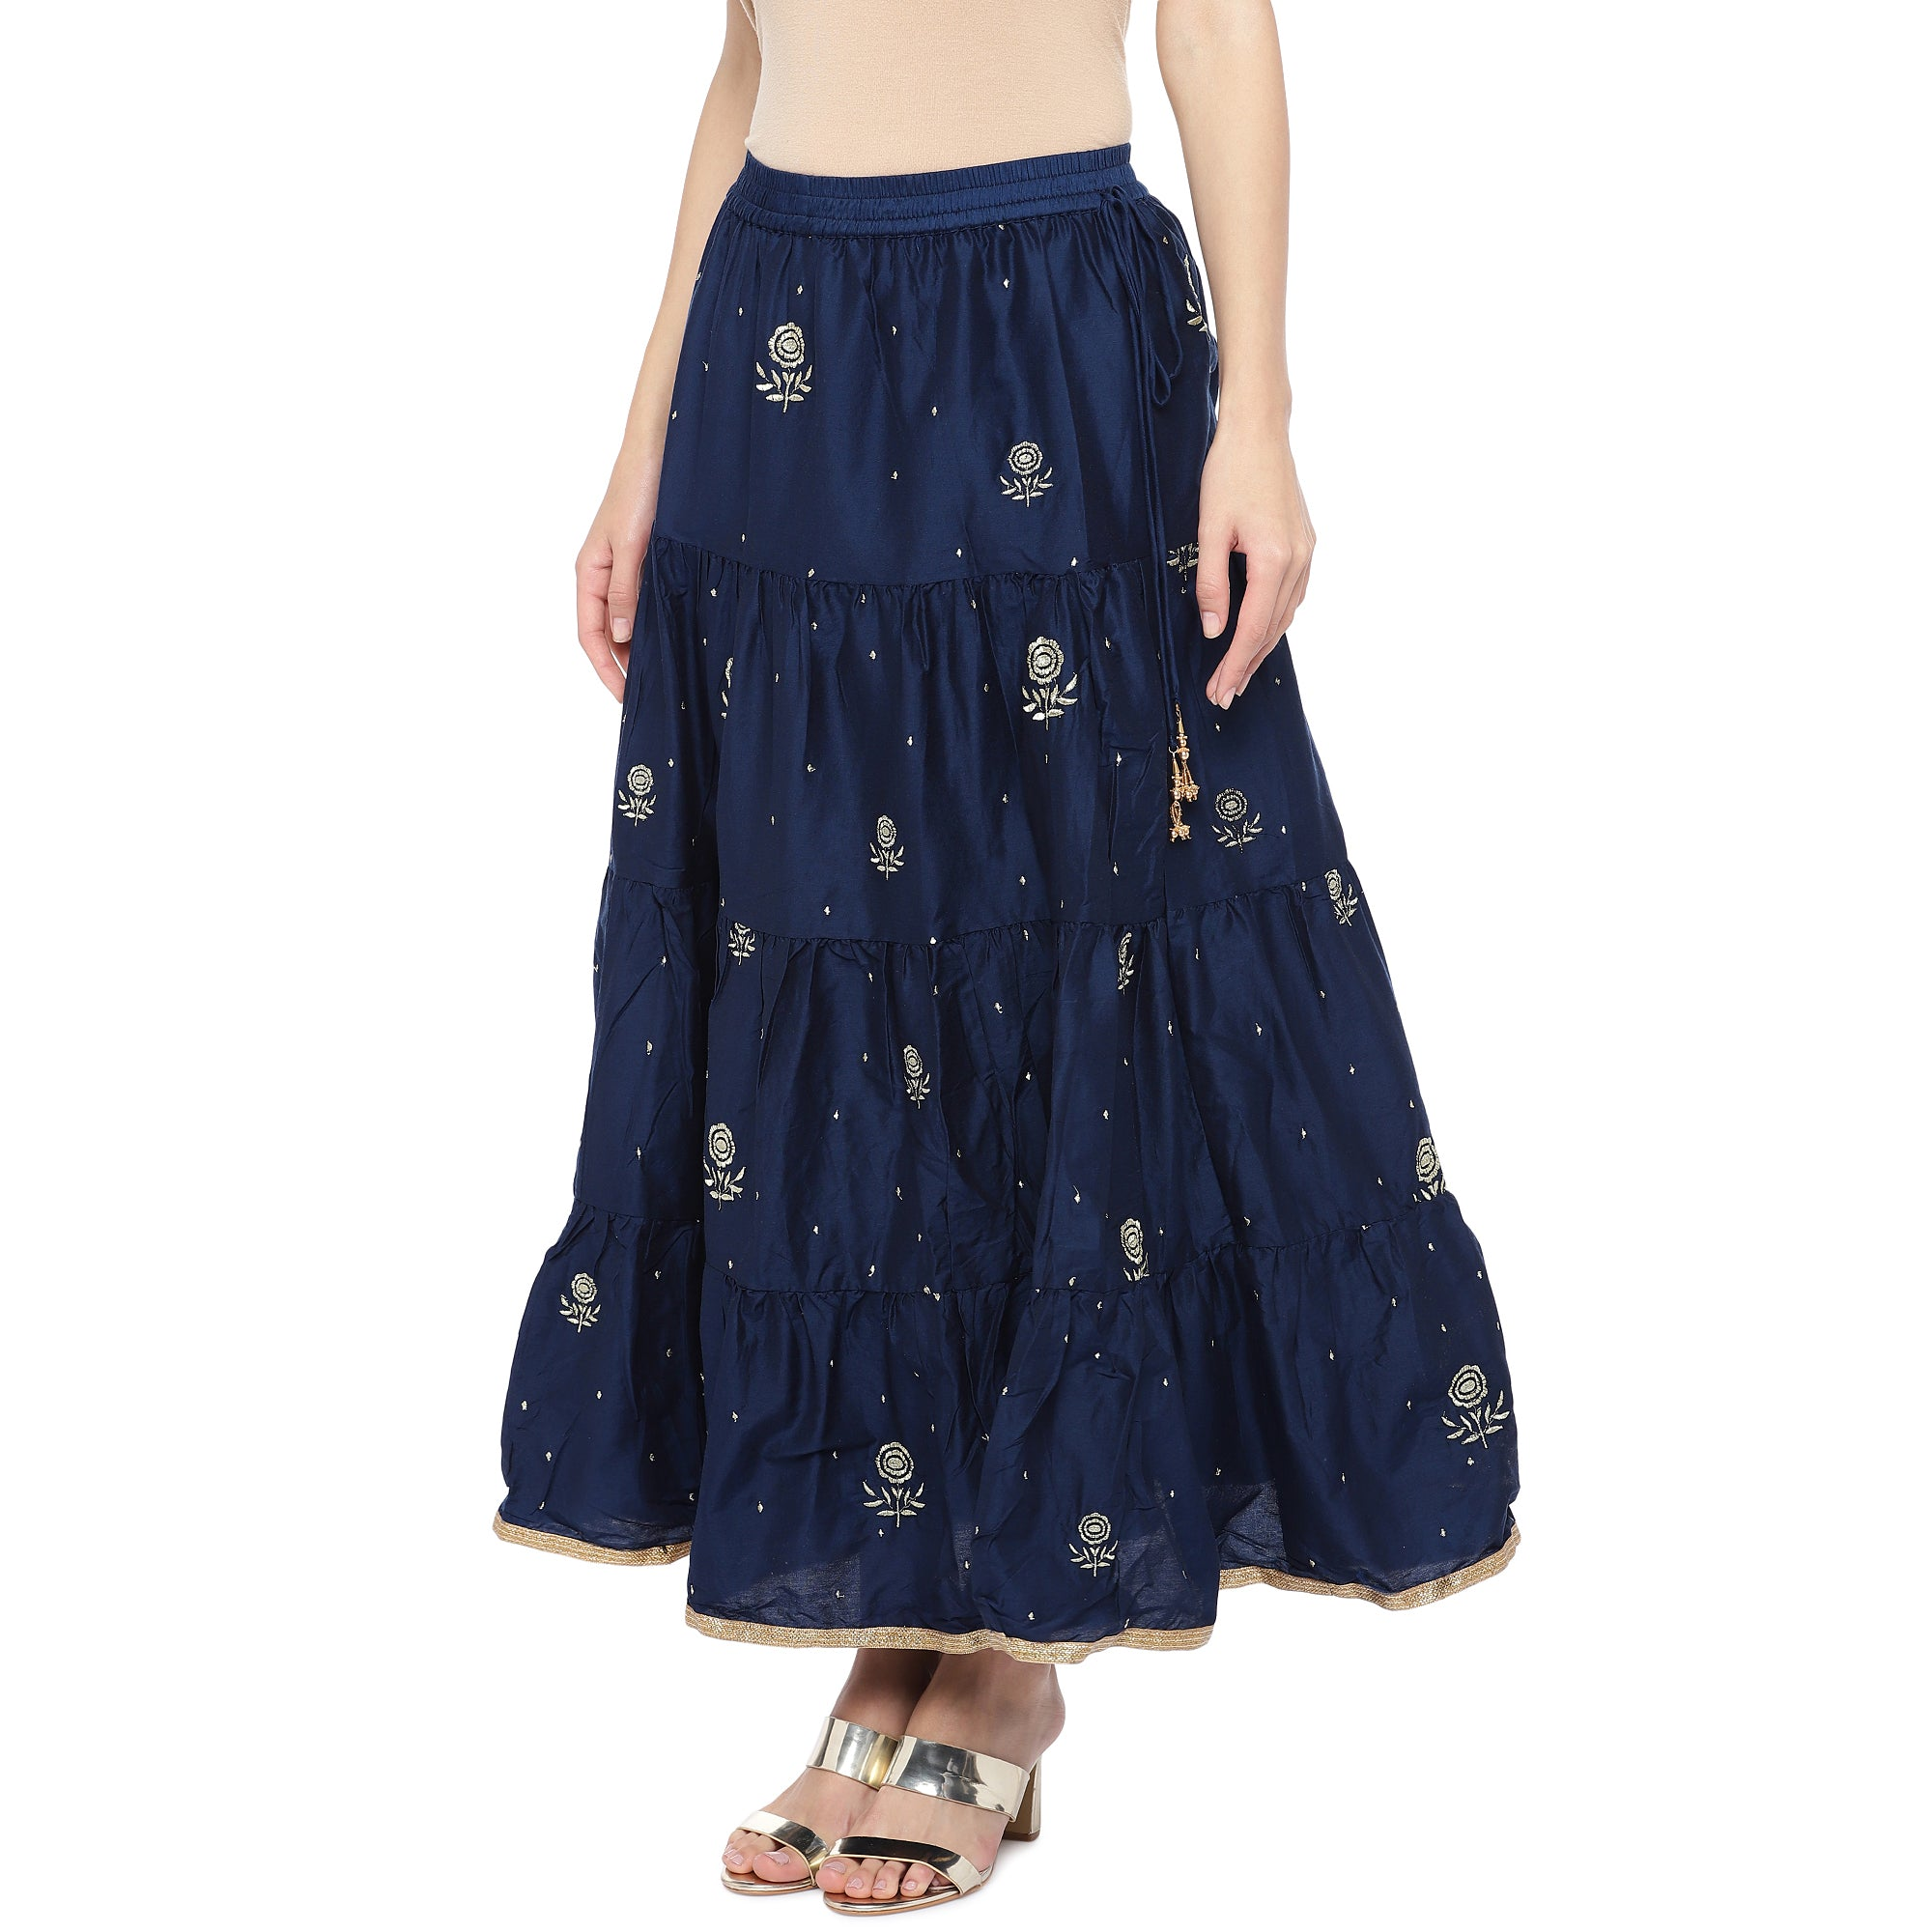 Navy Blue Embroidered Flared Maxi Ethnic Skirt-2